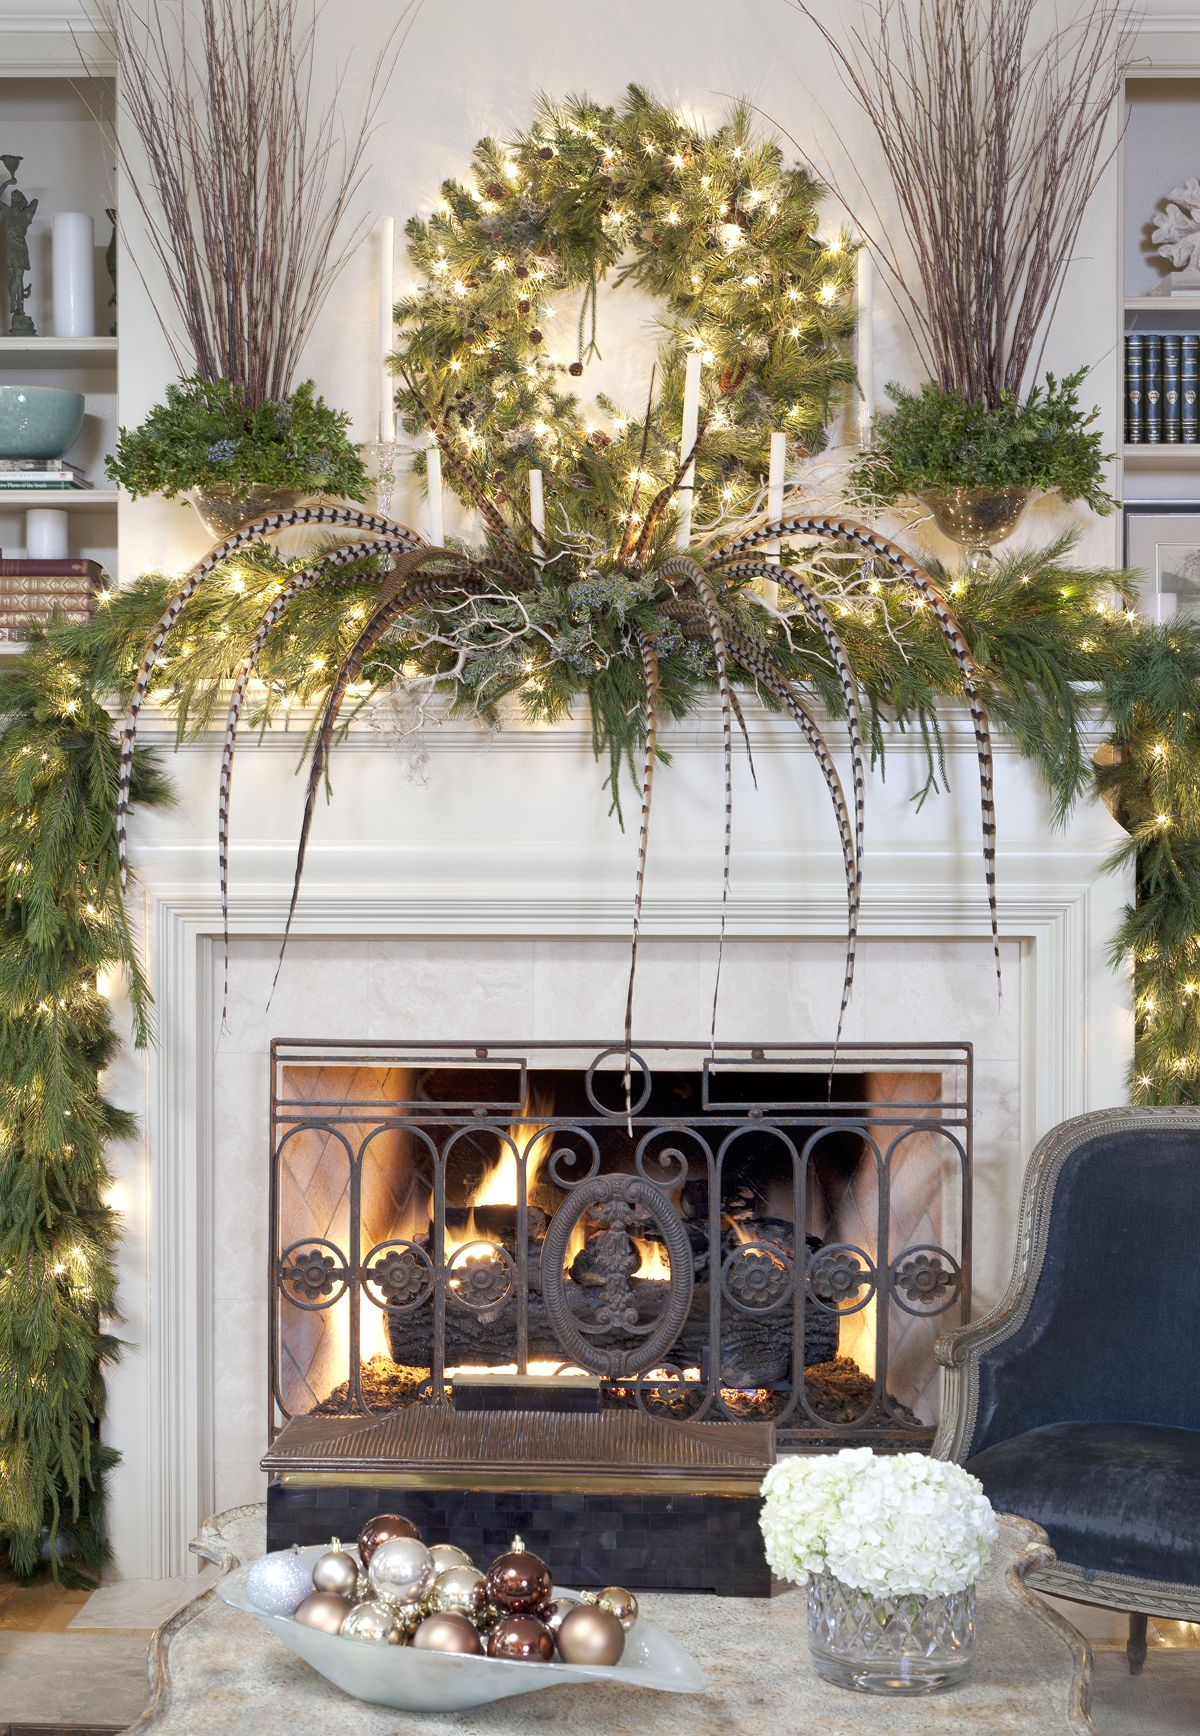 30 astonishing mantel christmas decorations ideas